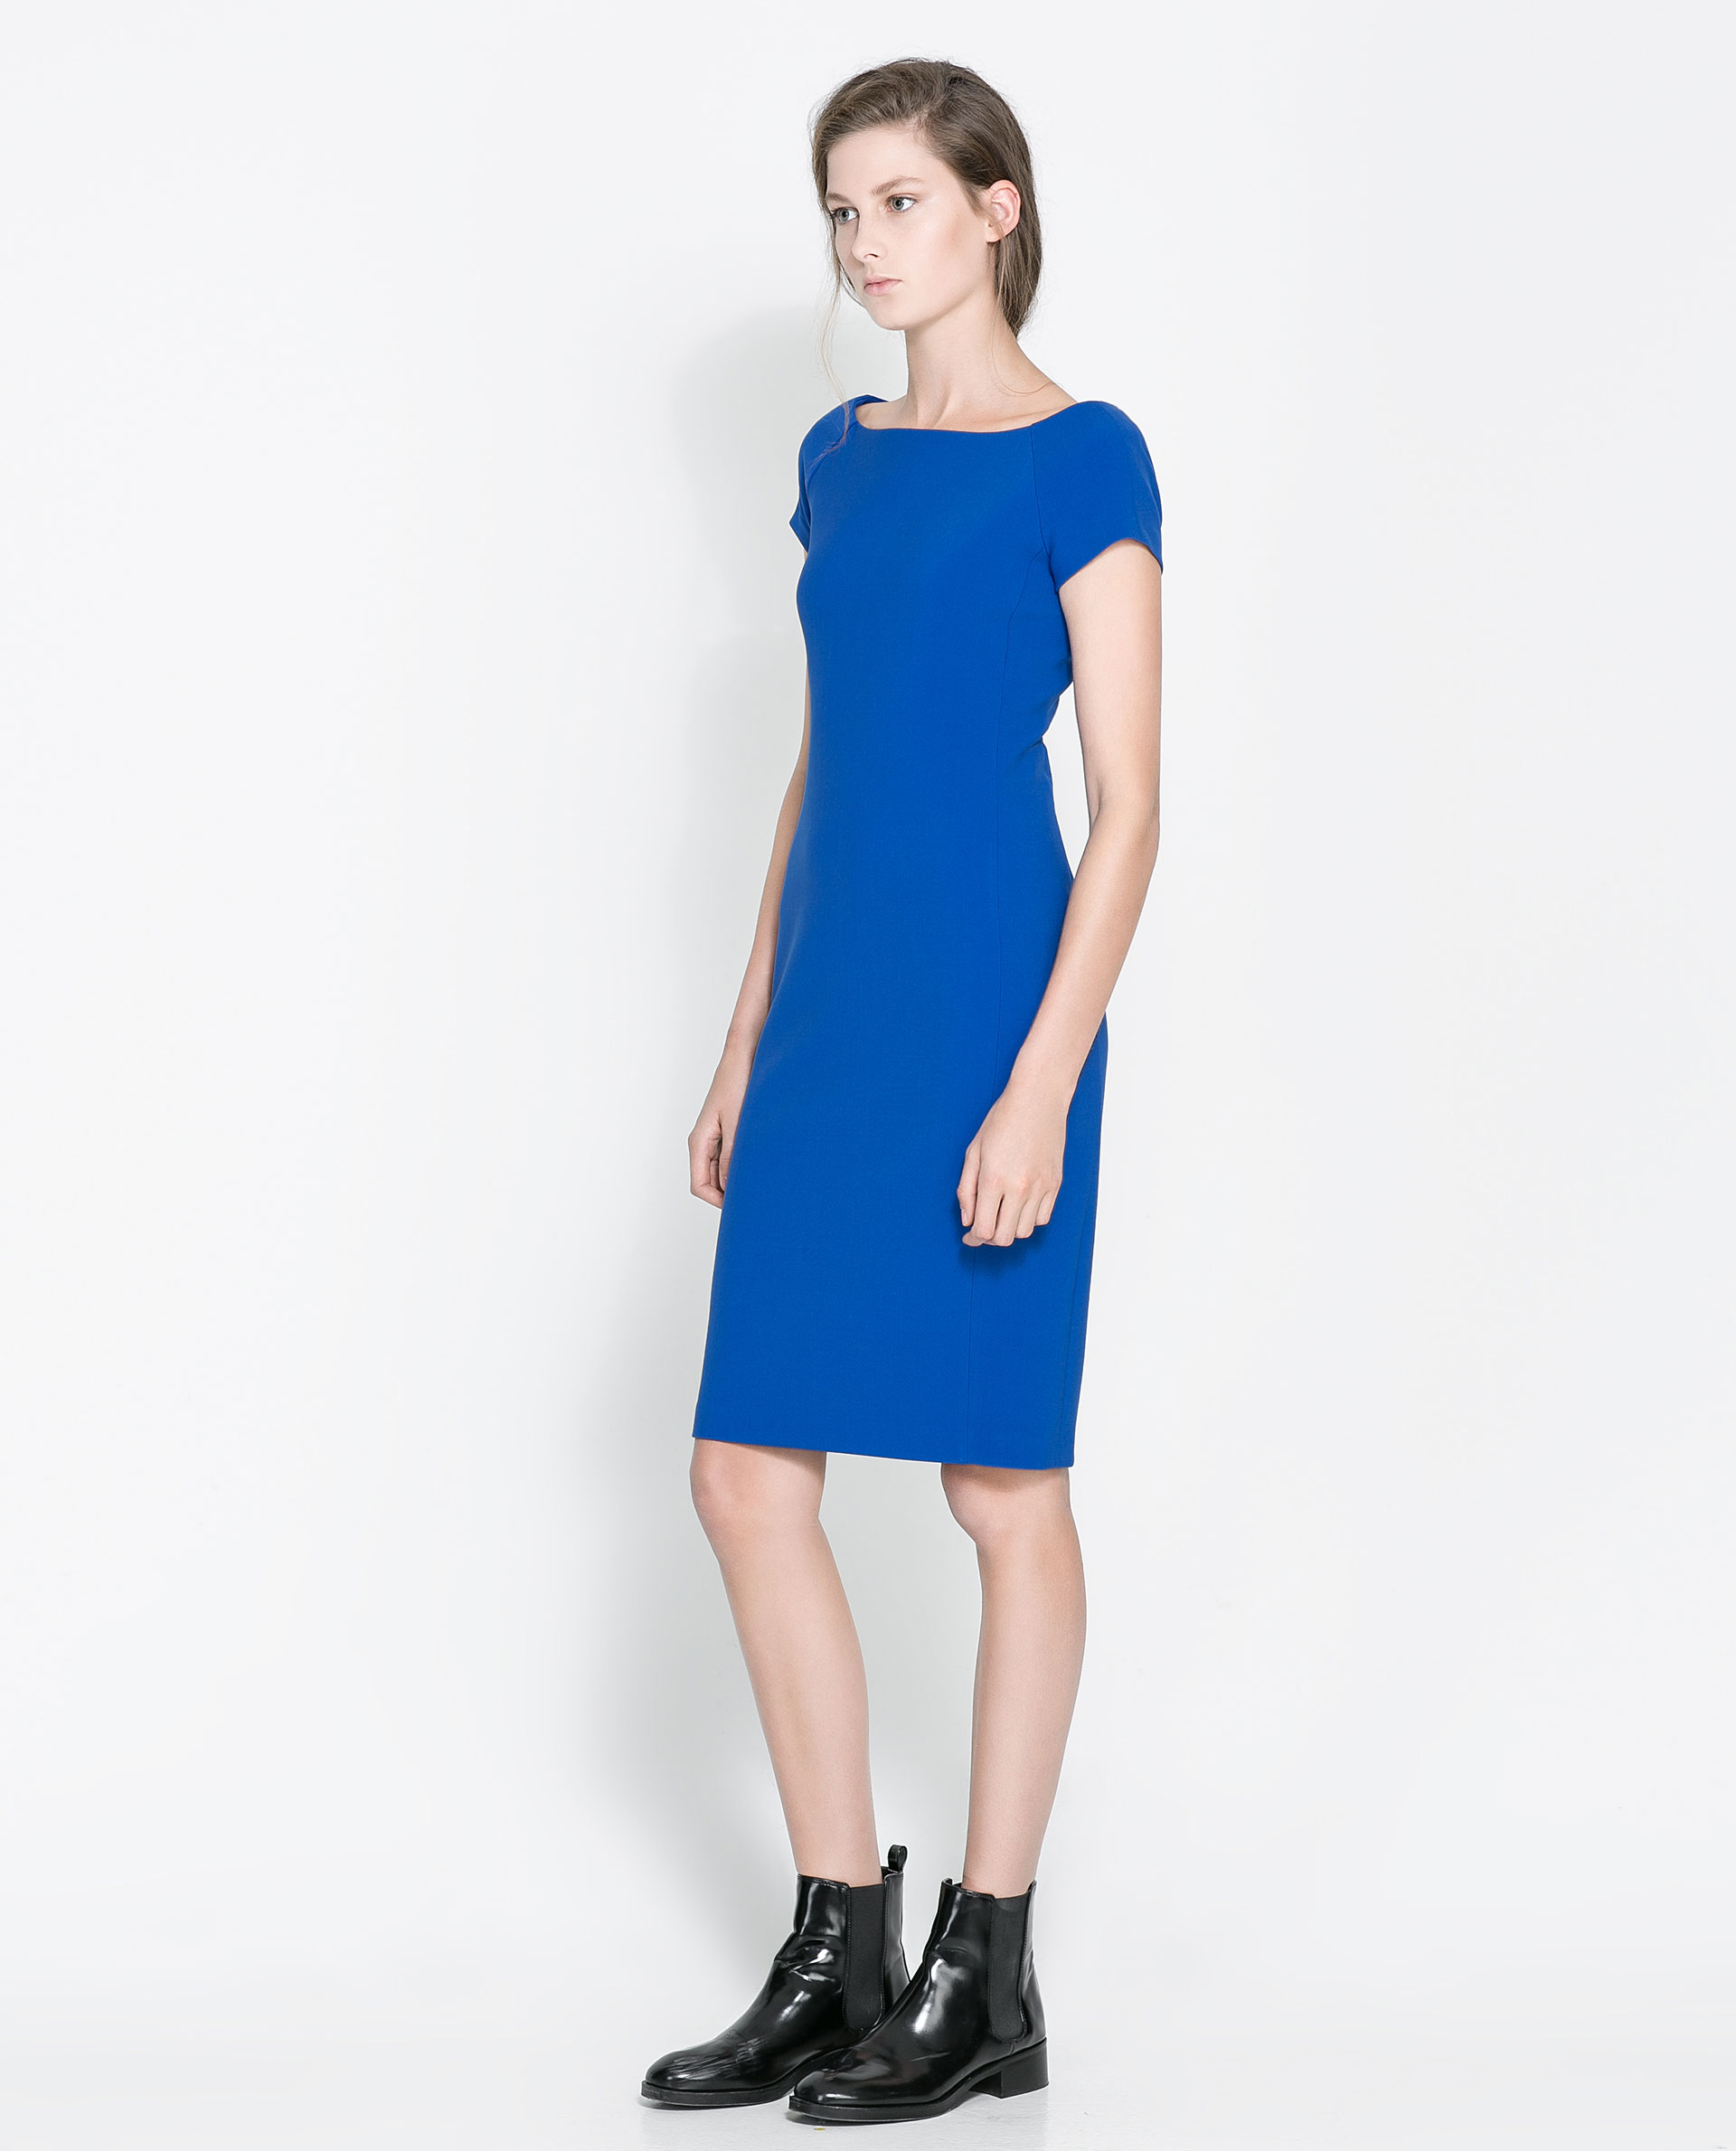 Blue dress zara discount